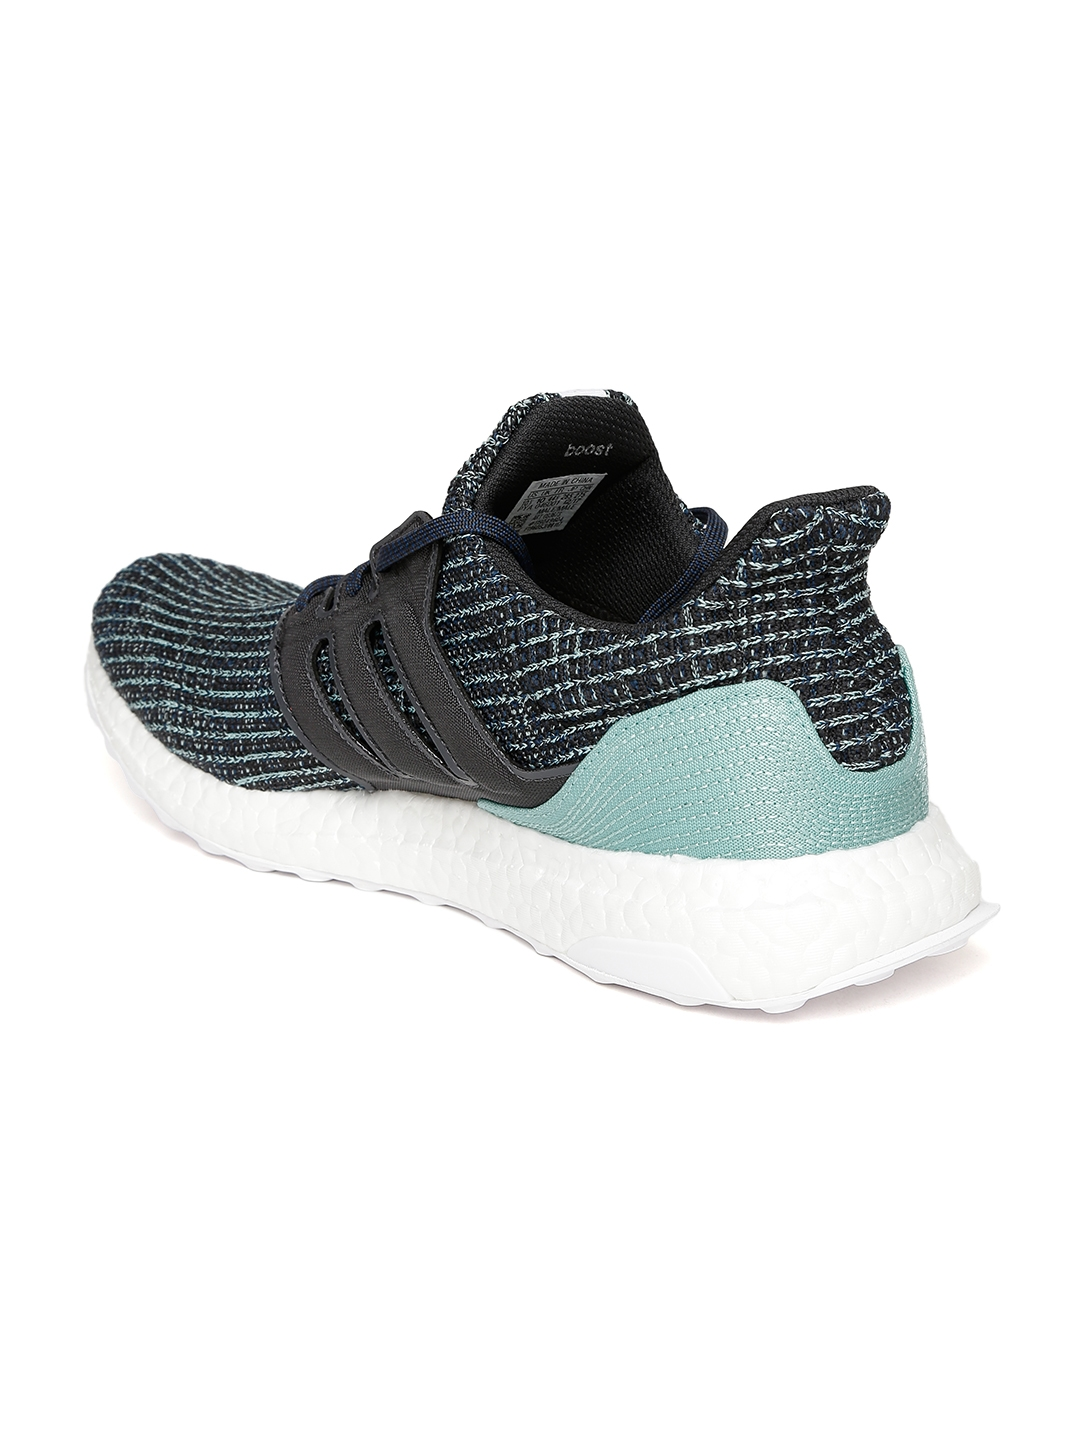 bd992276d97 Buy ADIDAS Men Blue   Black Ultraboost PARLEY Running Shoes - Sports ...